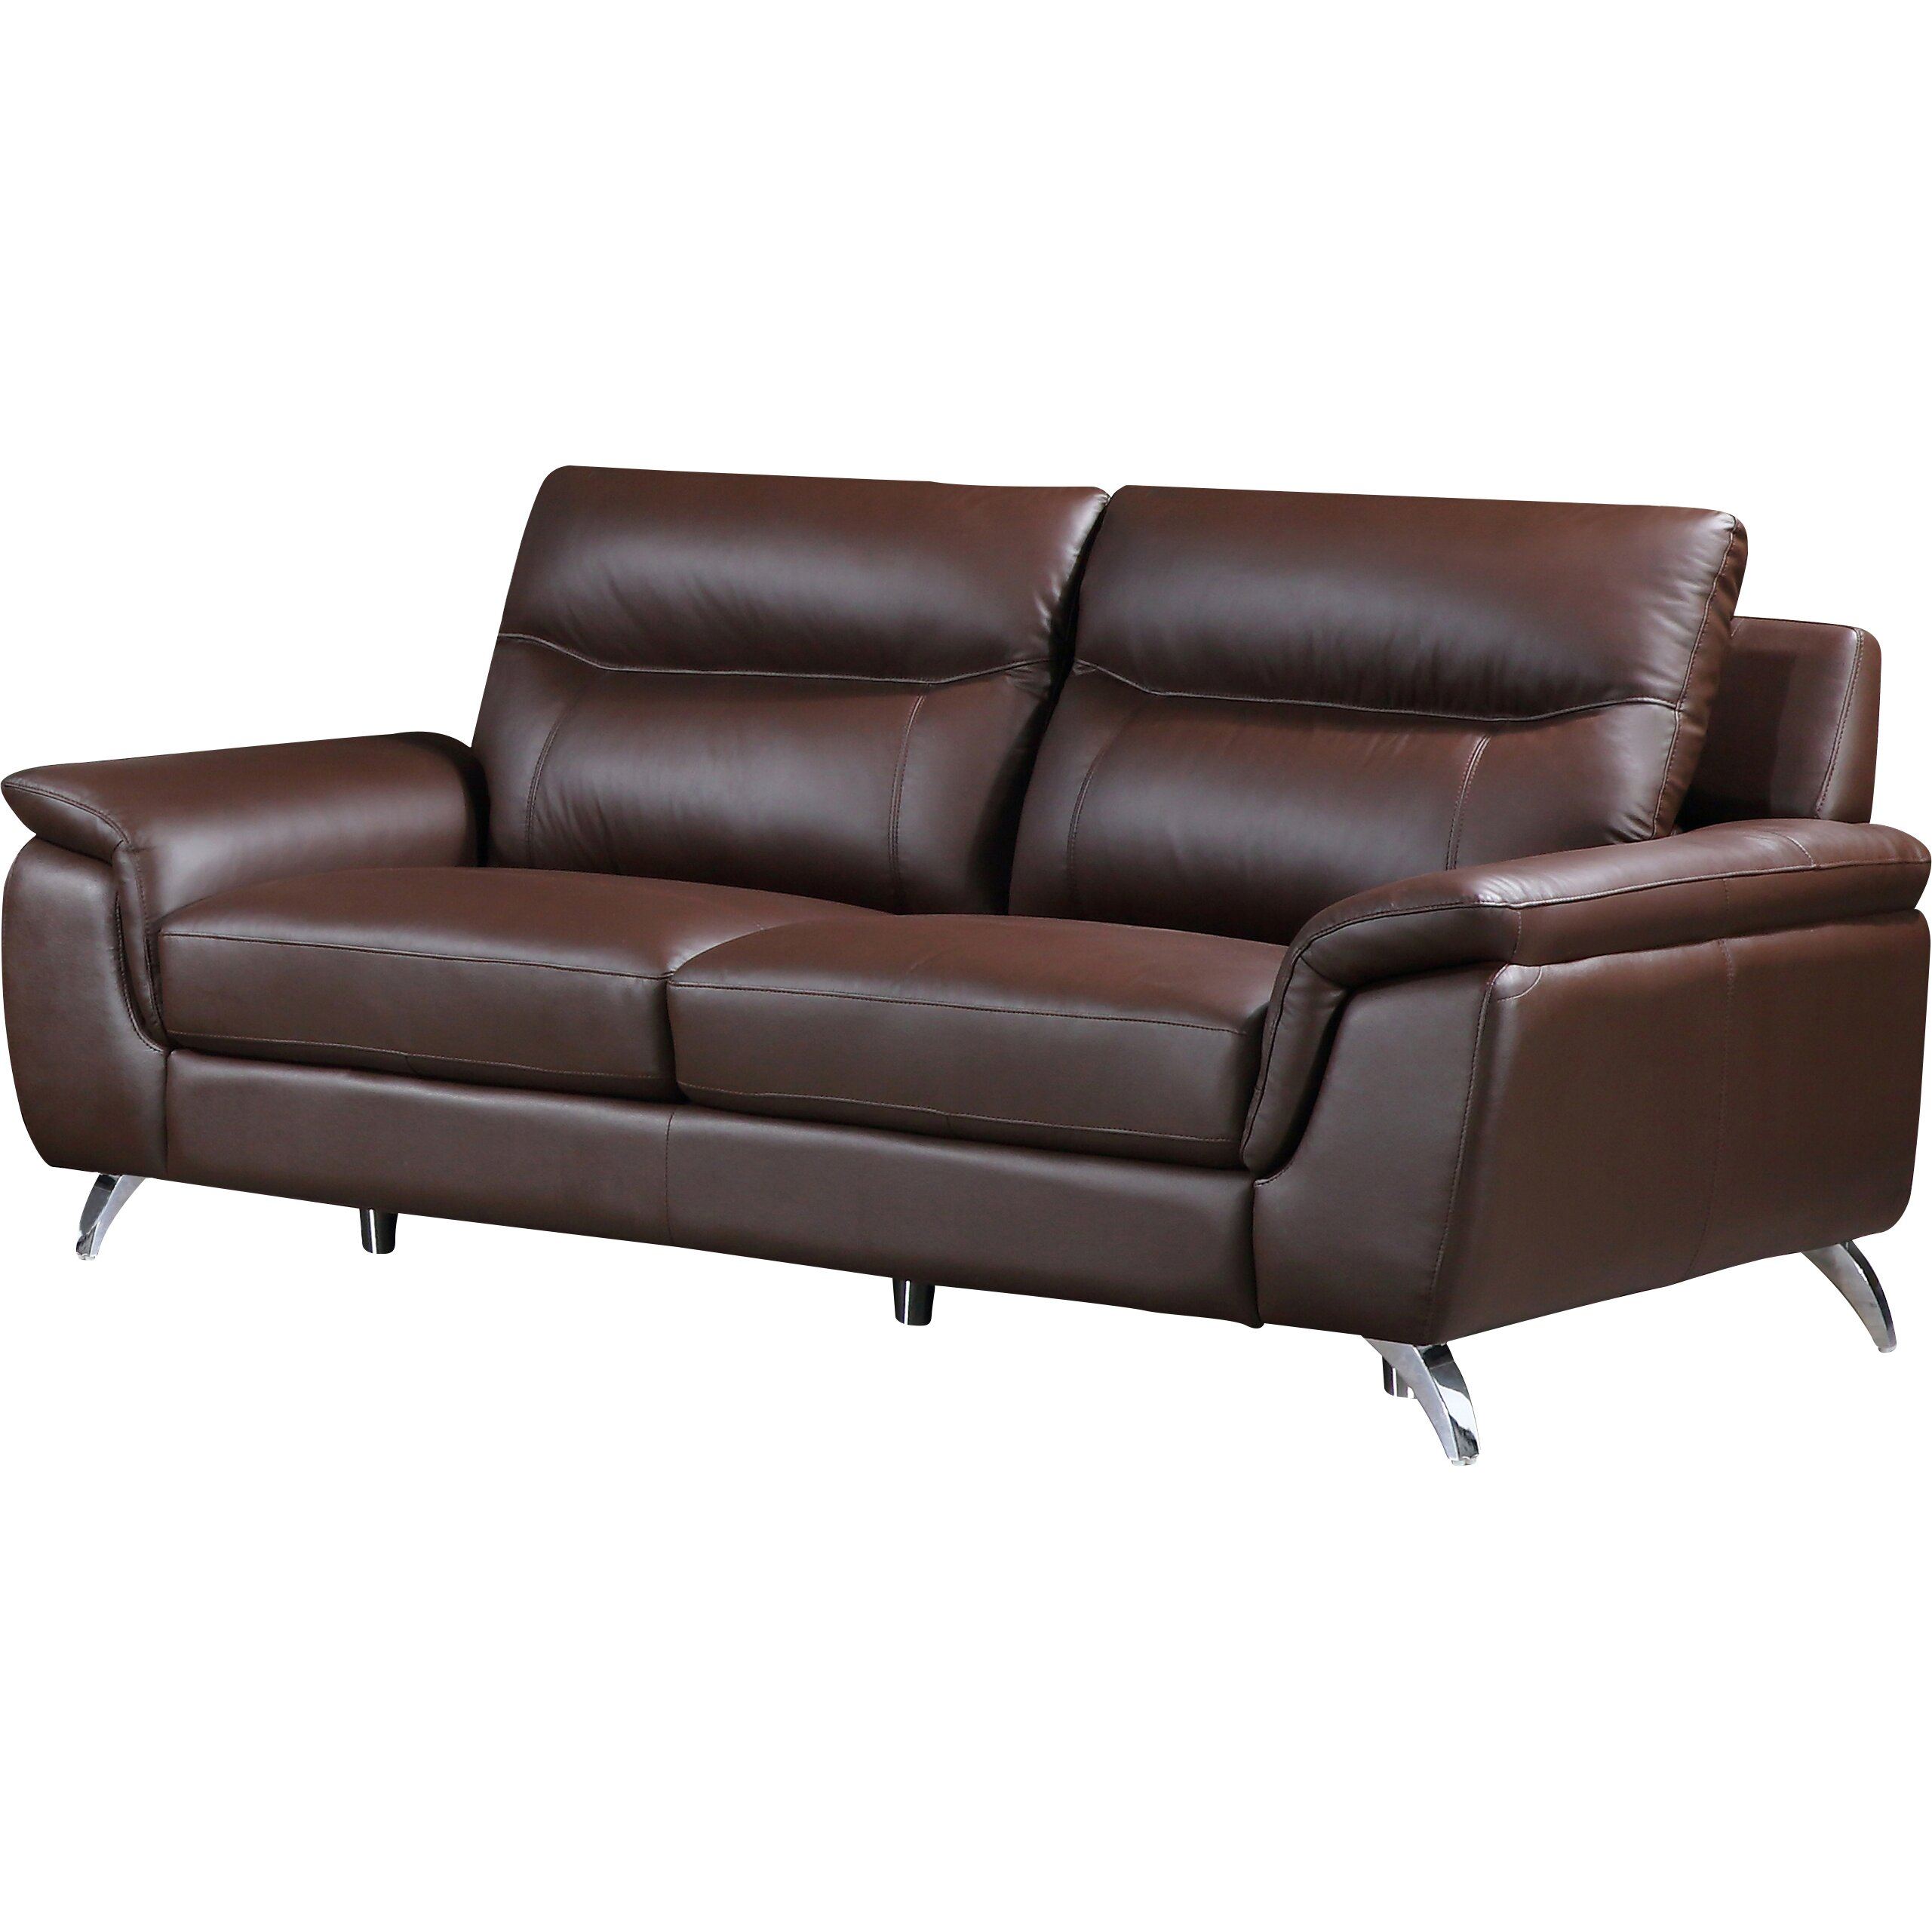 Reviews For Leather Sofas: Cortesi Home Chicago Leather Sofa & Reviews